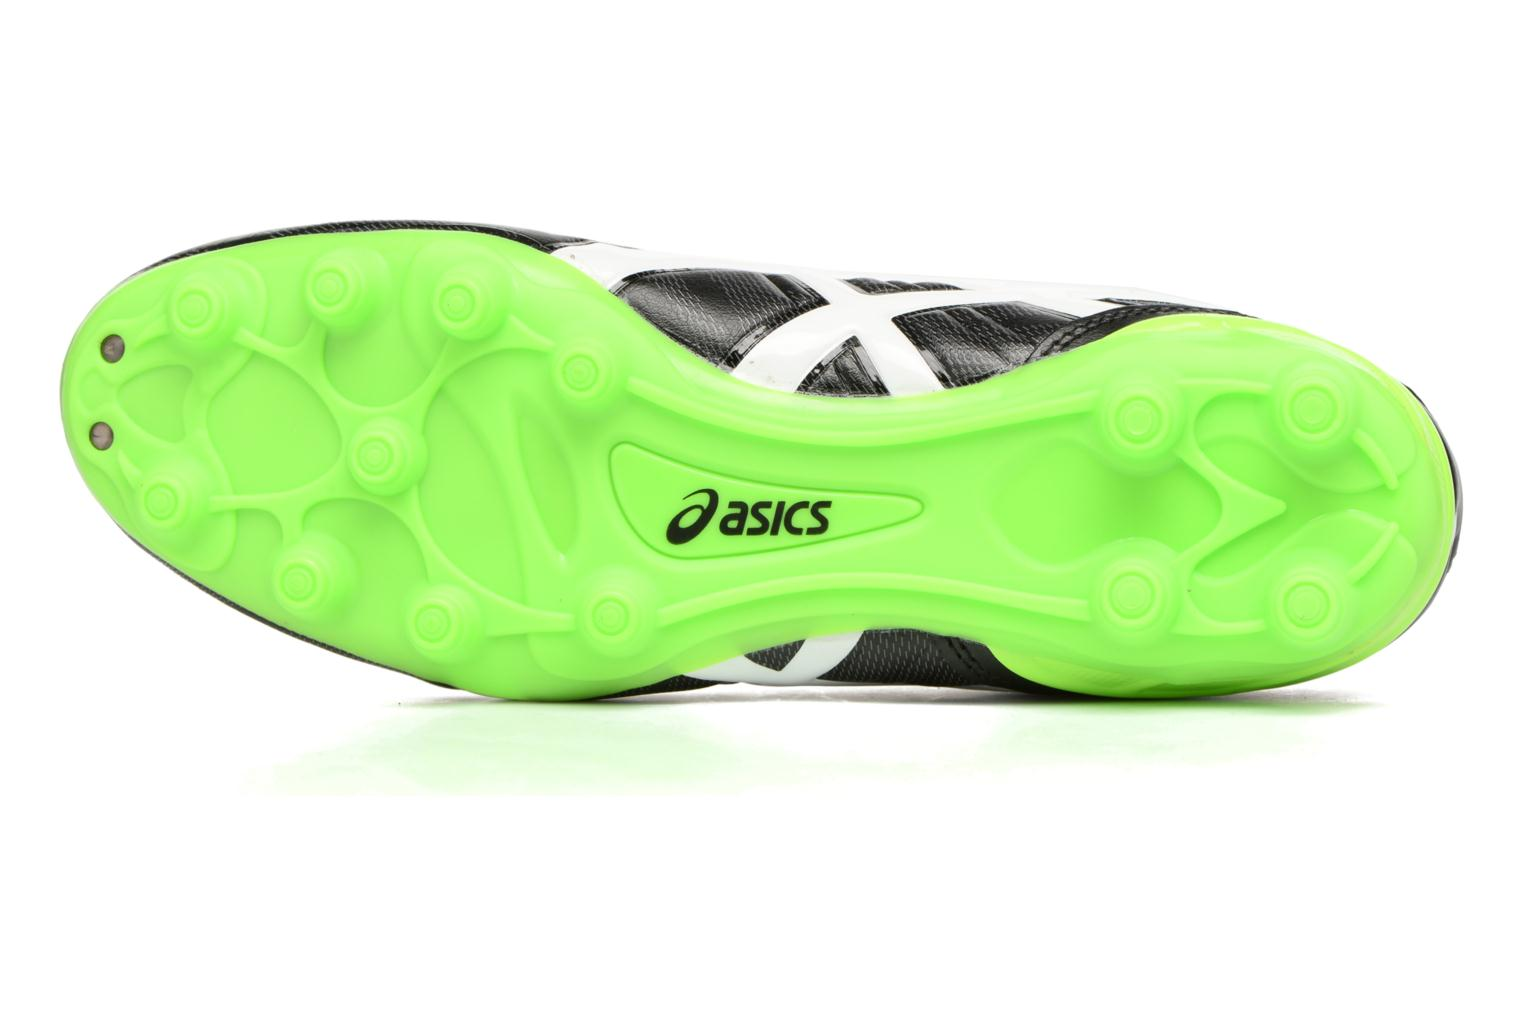 Green BlackFlash Cs Cs Match Asics BlackFlash Green Asics Match gqRa8